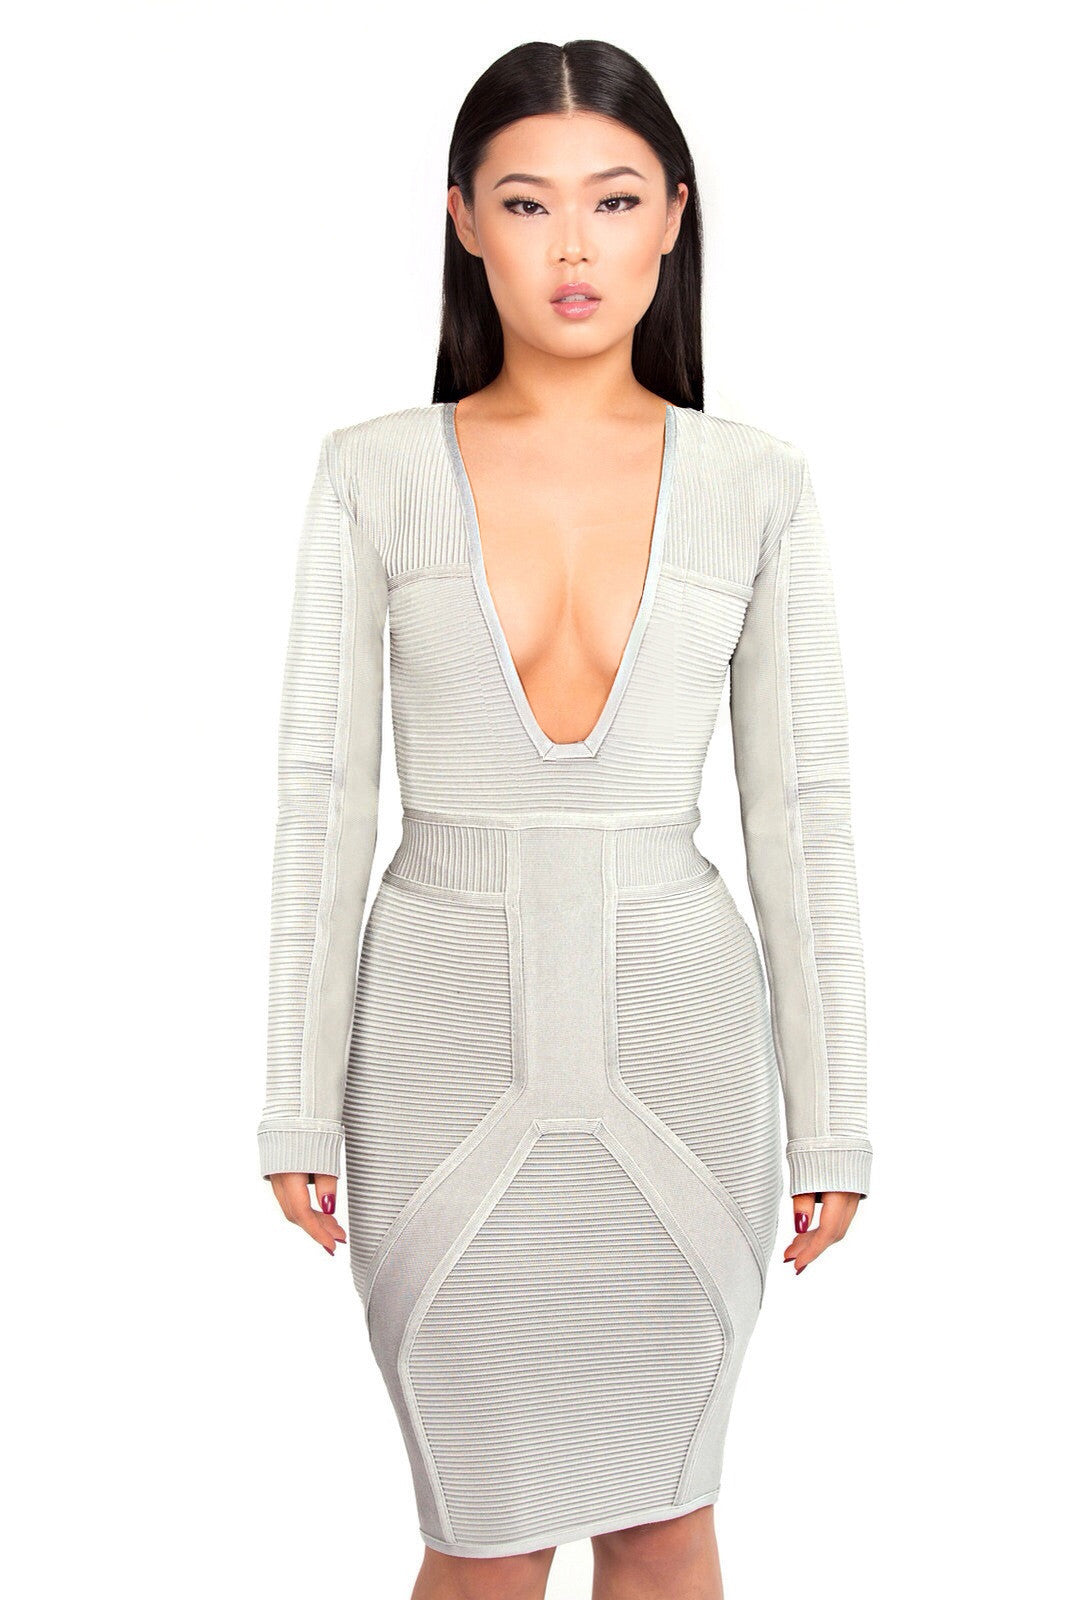 Caprice Ribbed bandage dress in grey